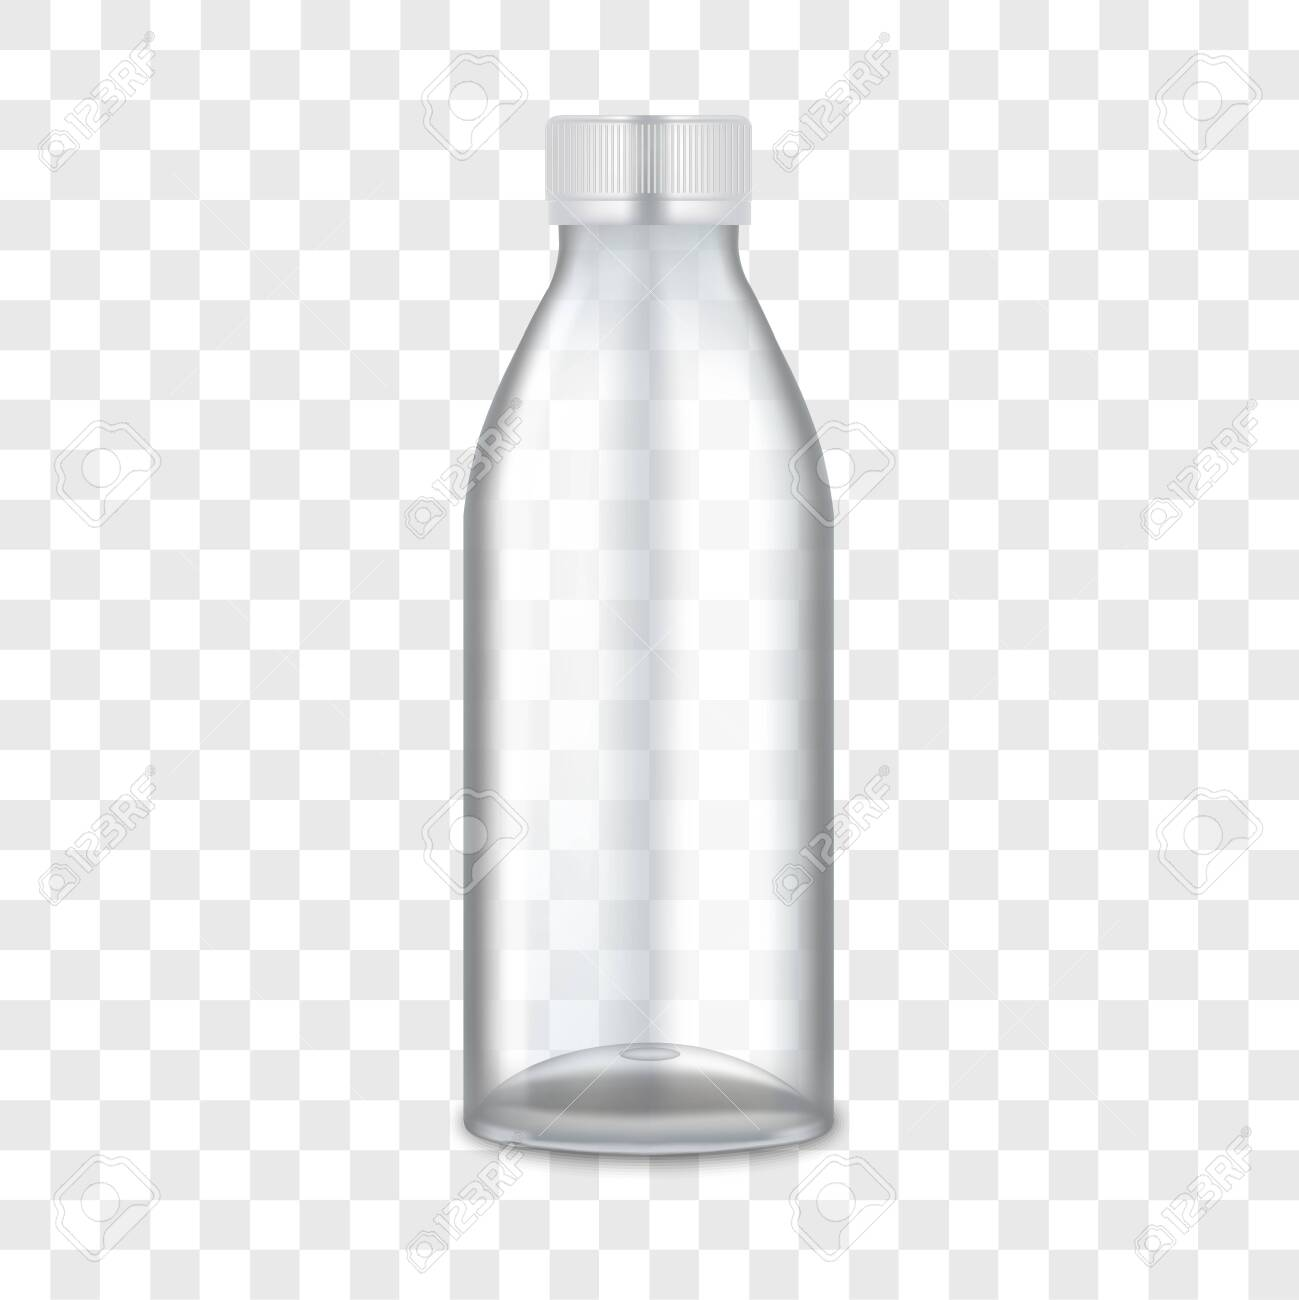 Realistic 3d Detailed Empty Mockup Pet Plastic Bottle for Water or Drink on a Transparent Background. Vector illustration - 133935312